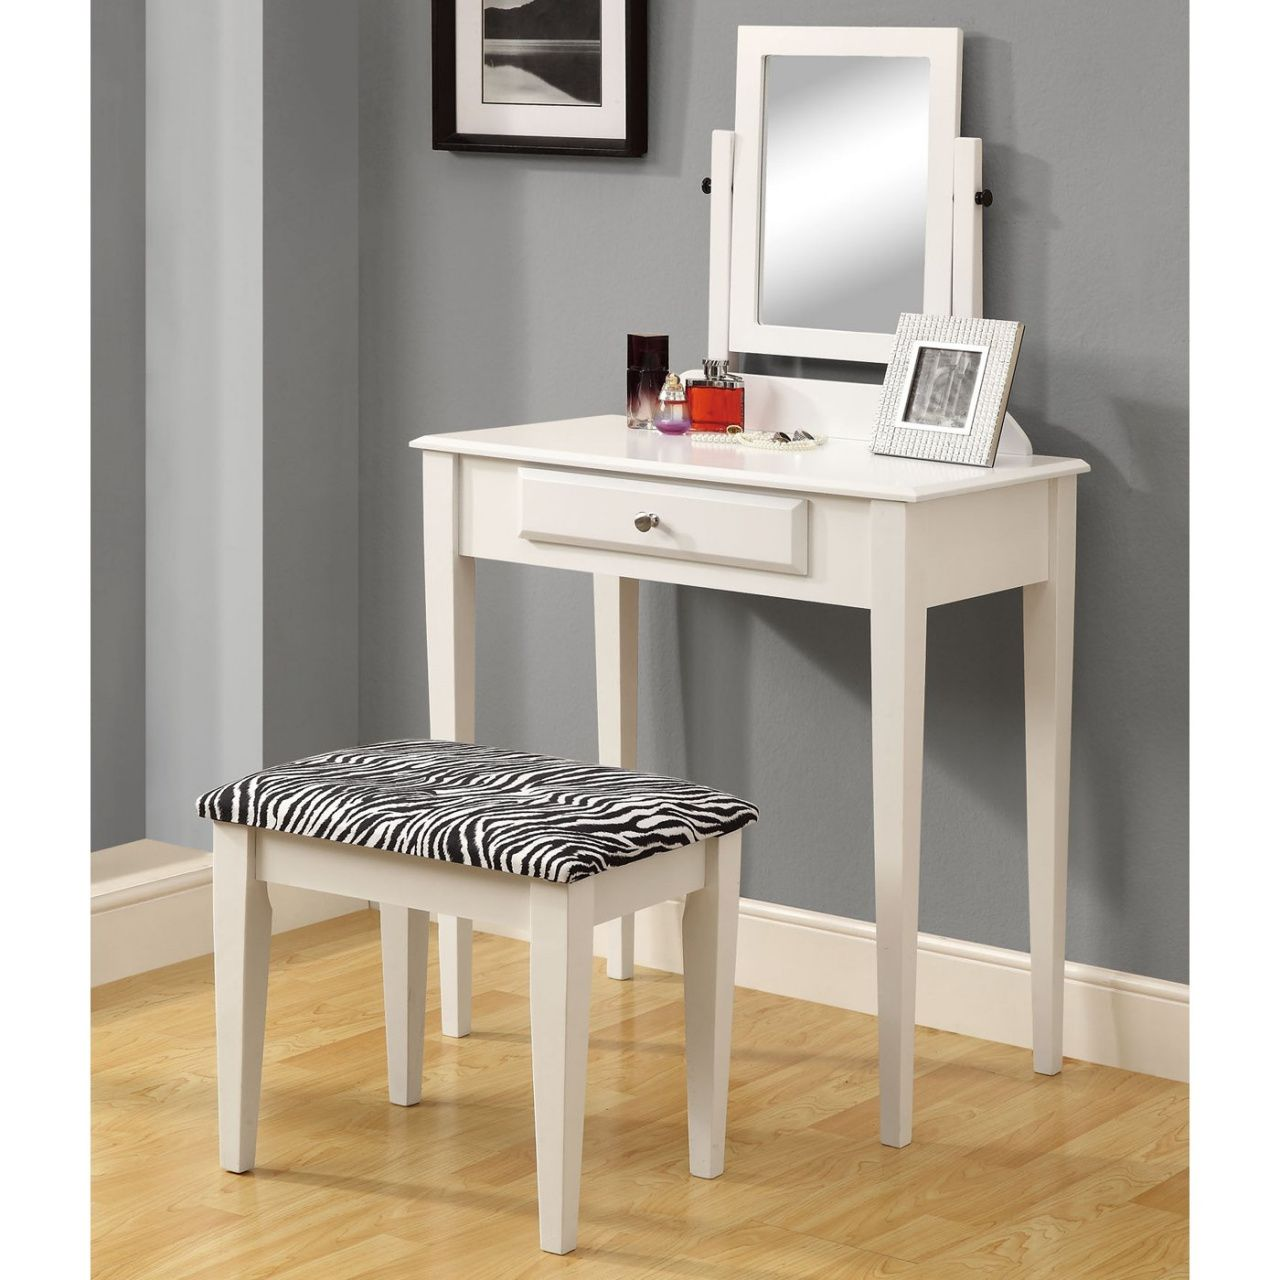 Merveilleux Tall Vanity Table   Best Home Office Furniture Check More At  Http://www.nikkitsfun.com/tall Vanity Table/